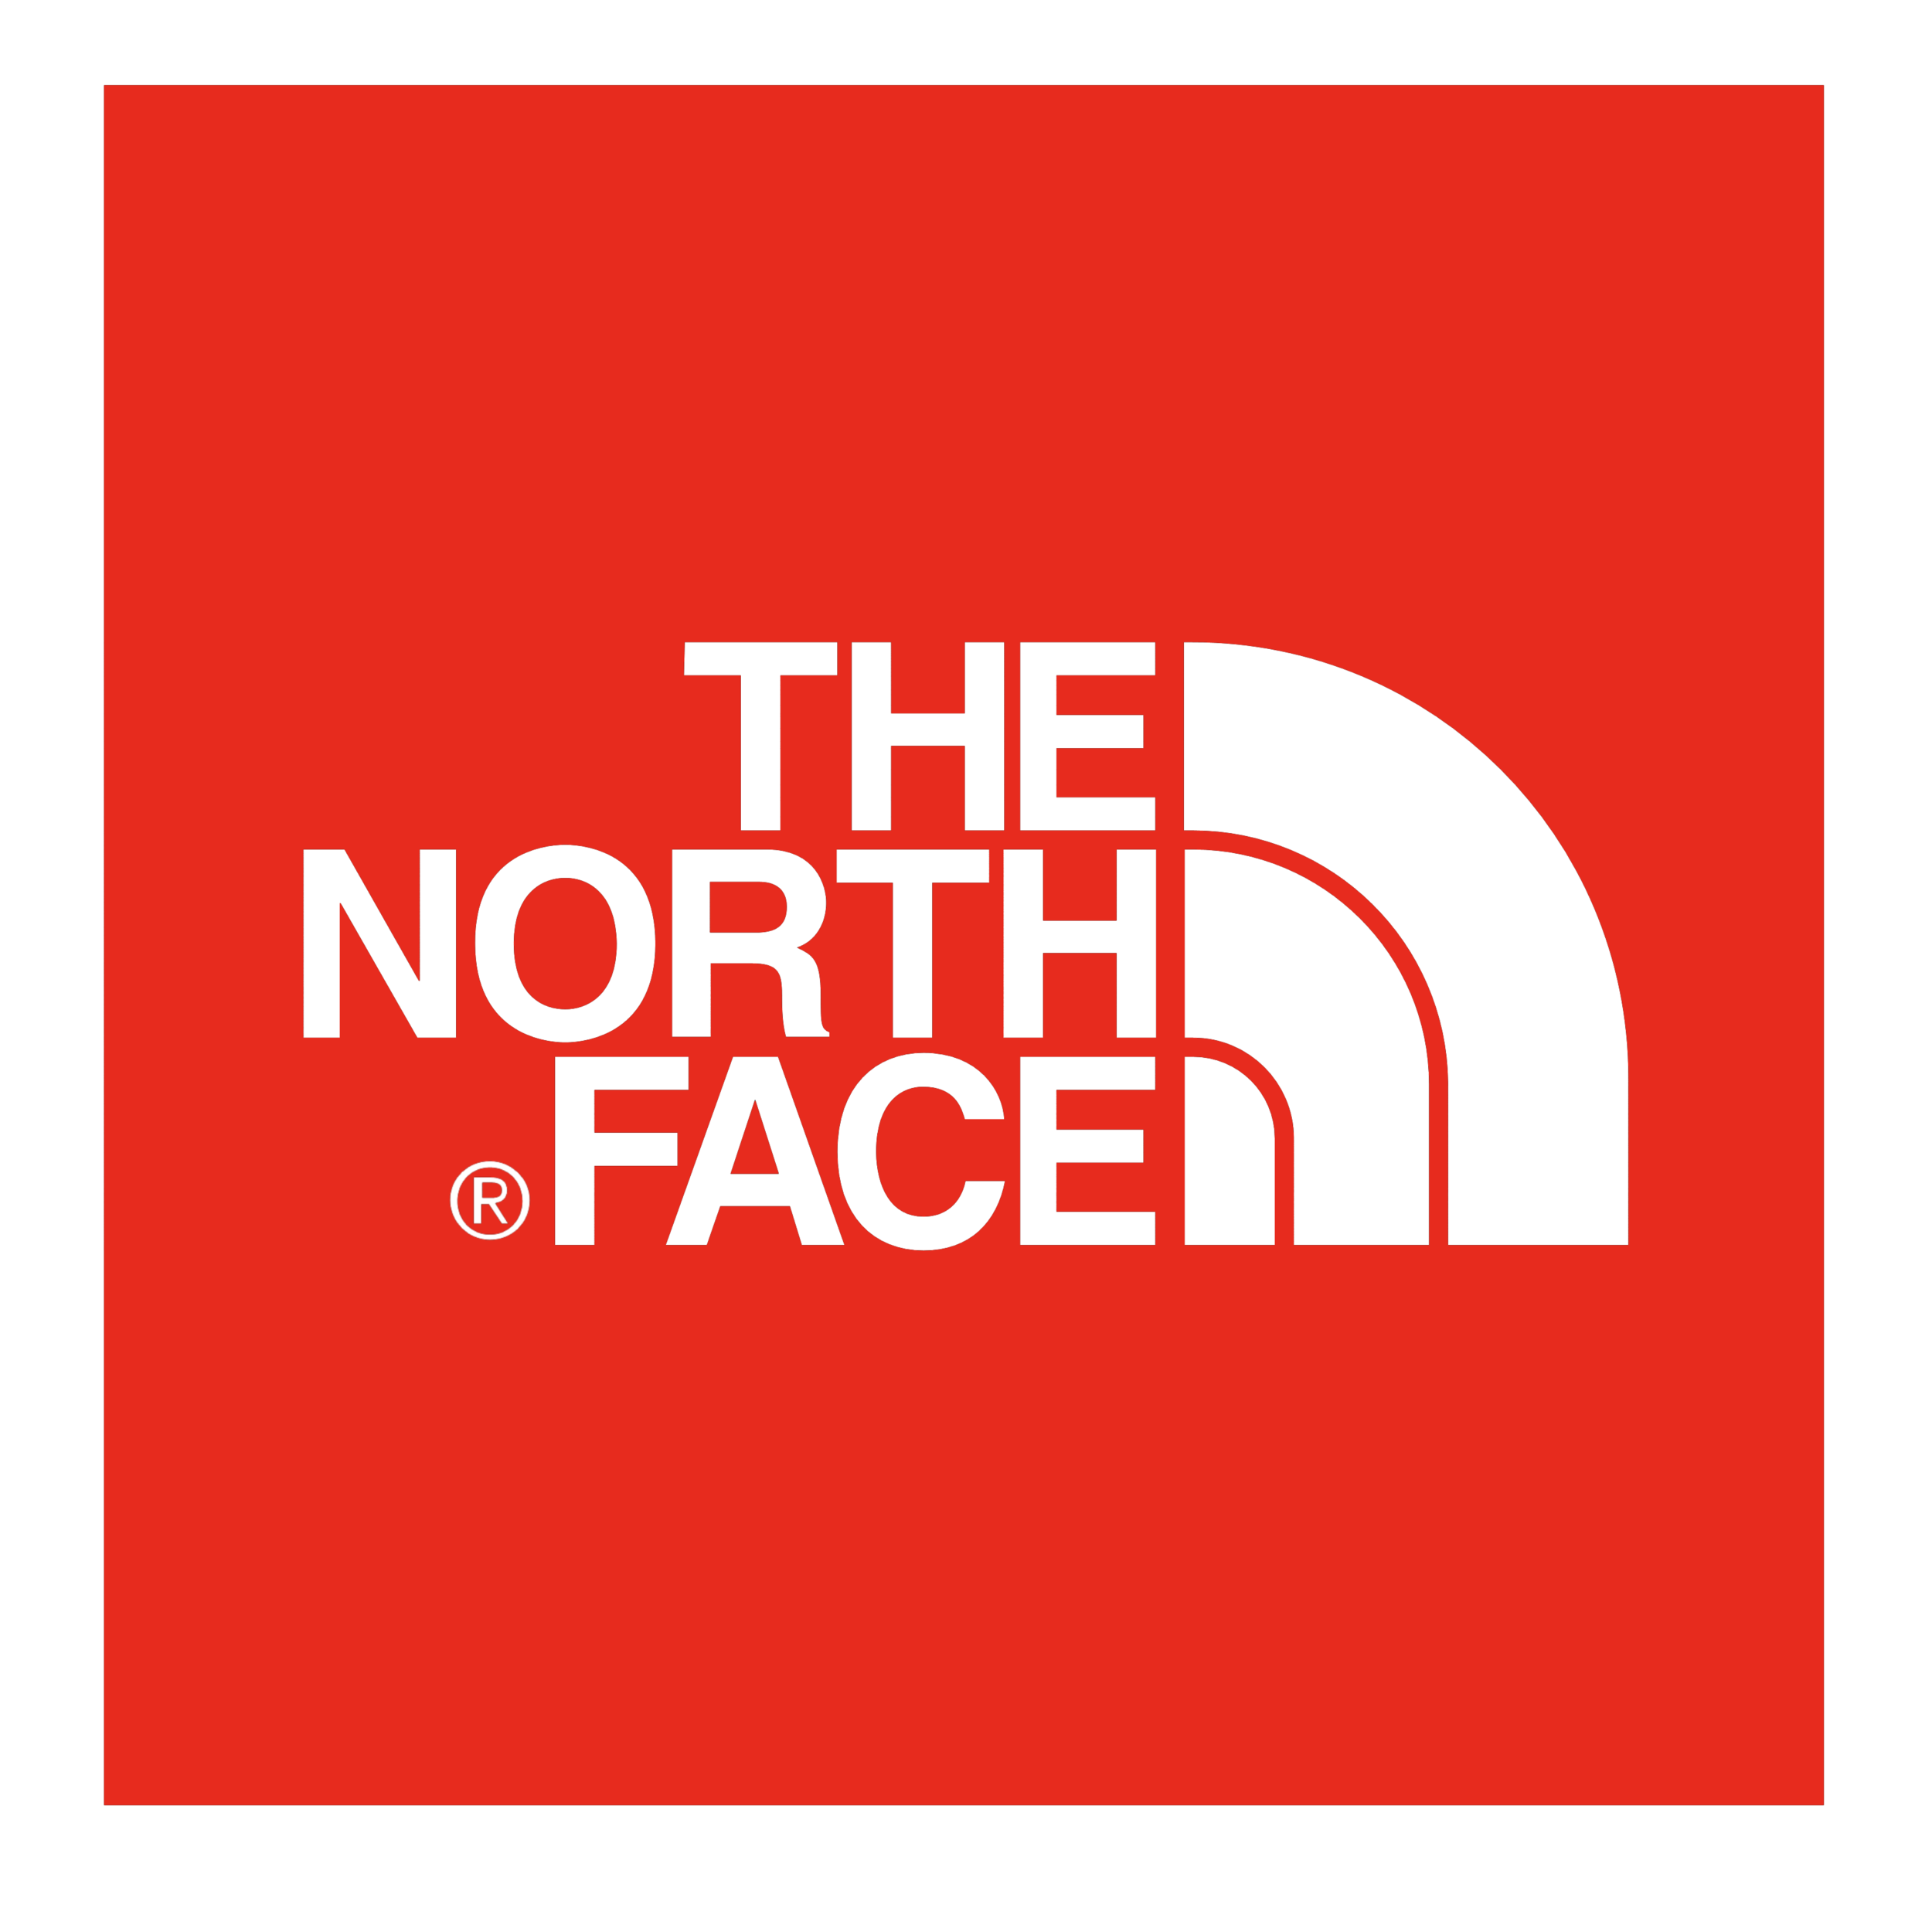 The_North_Face_logo_red.png